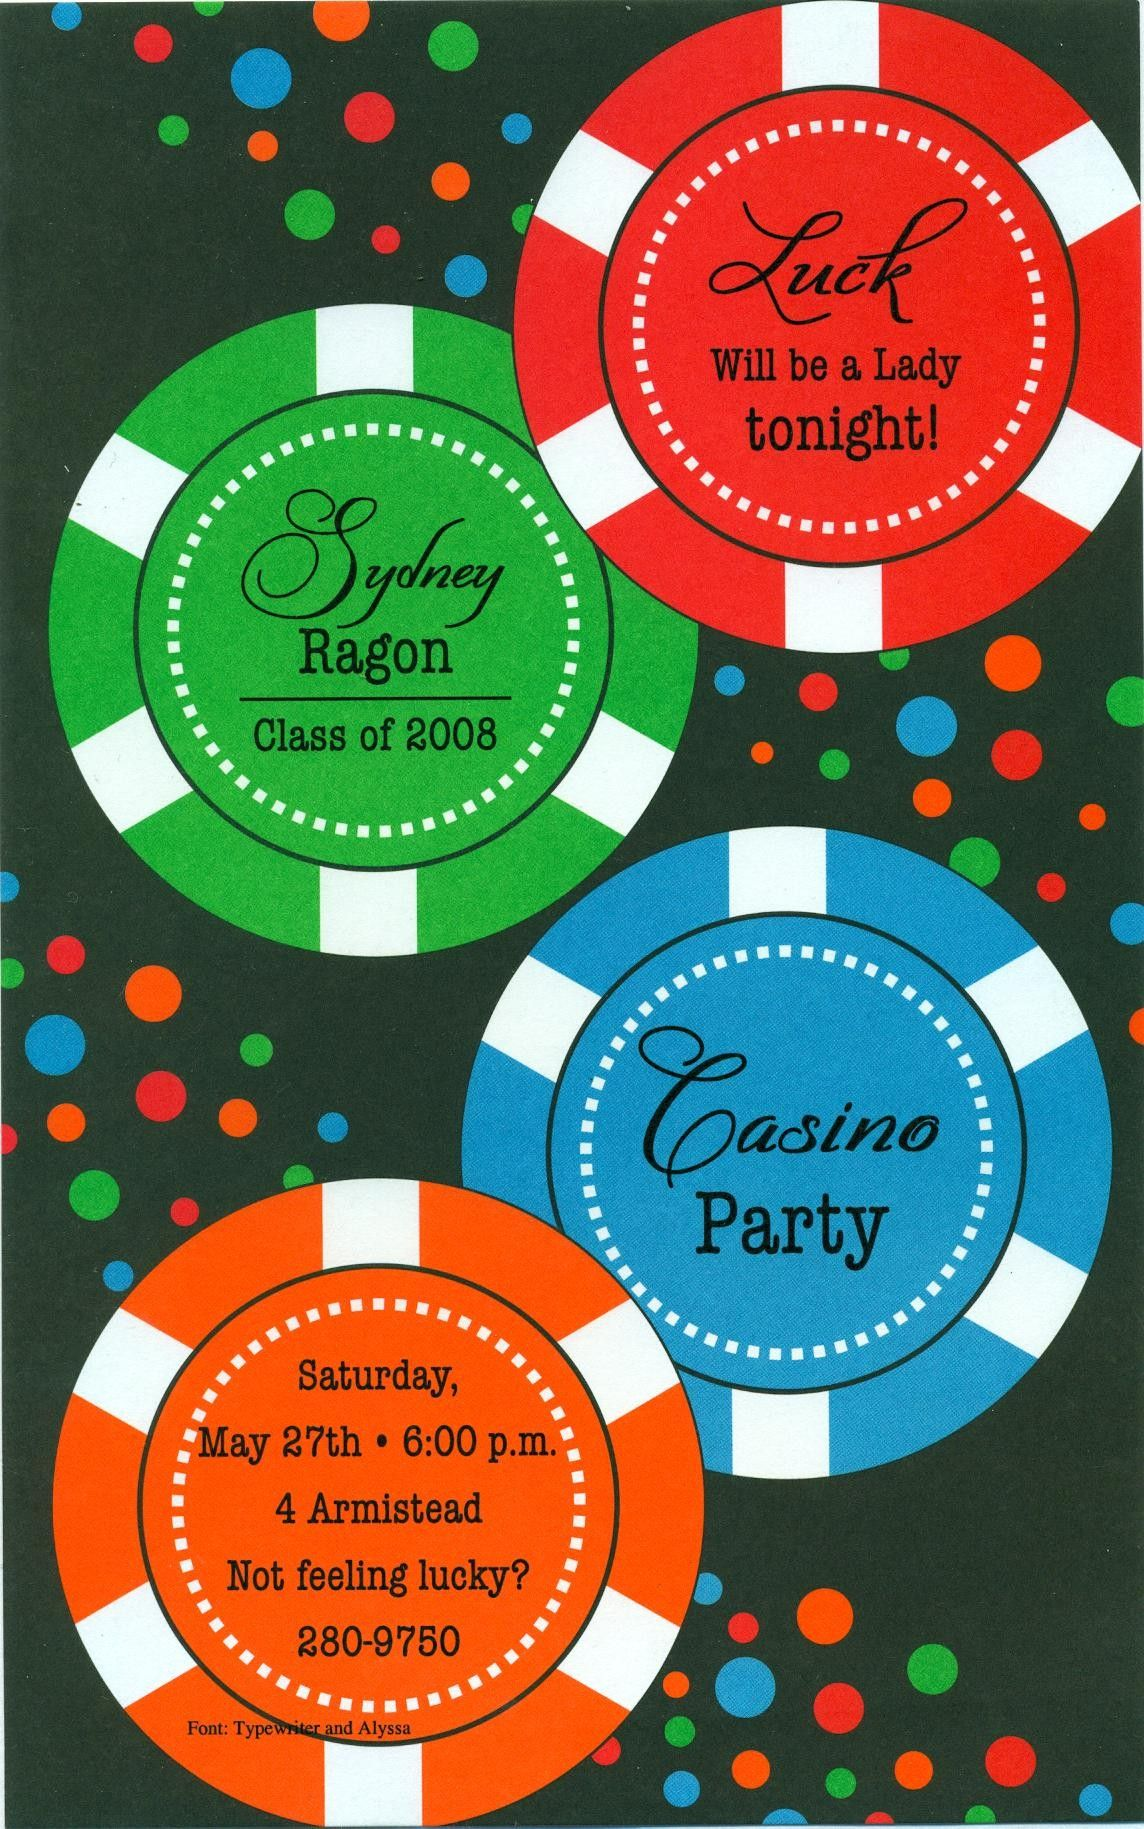 Save the date idea for casino party but have Christmas party ...